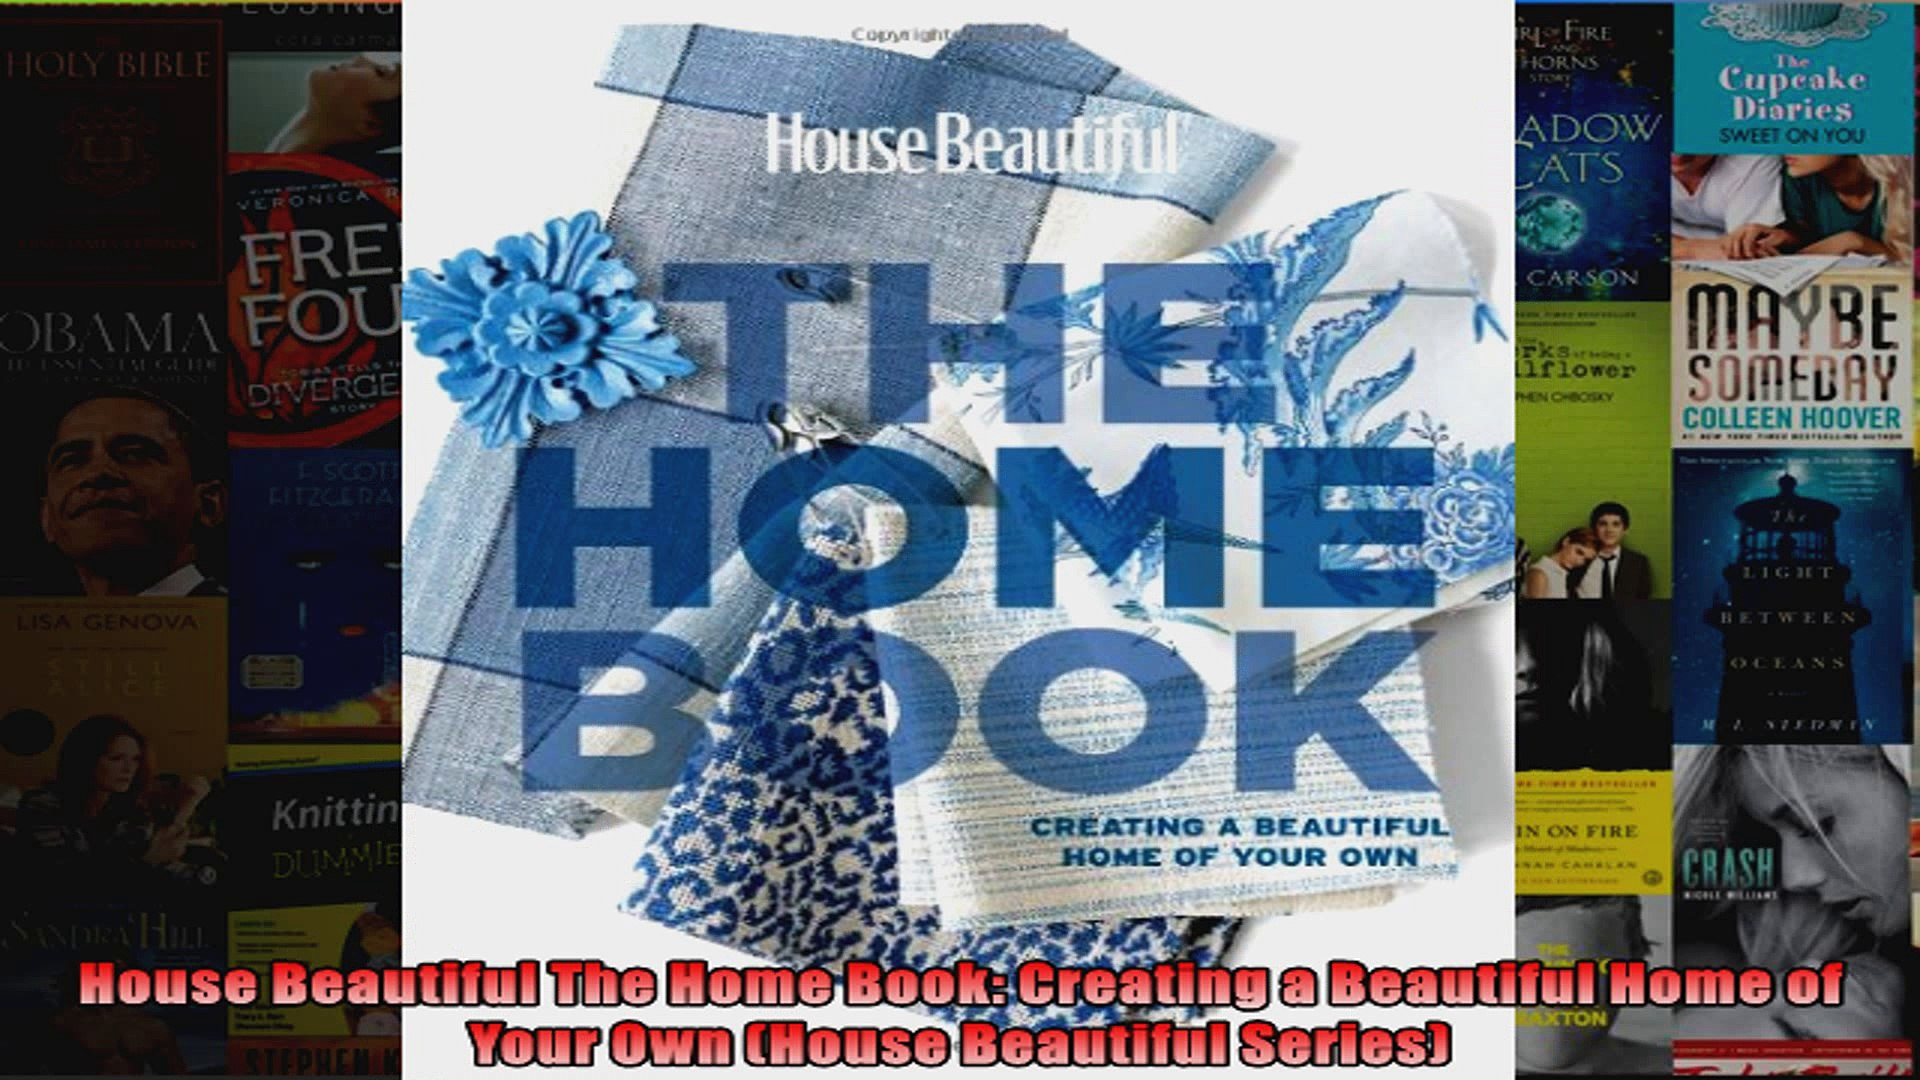 Read  House Beautiful The Home Book Creating a Beautiful Home of Your Own House Beautiful  Full EBoo